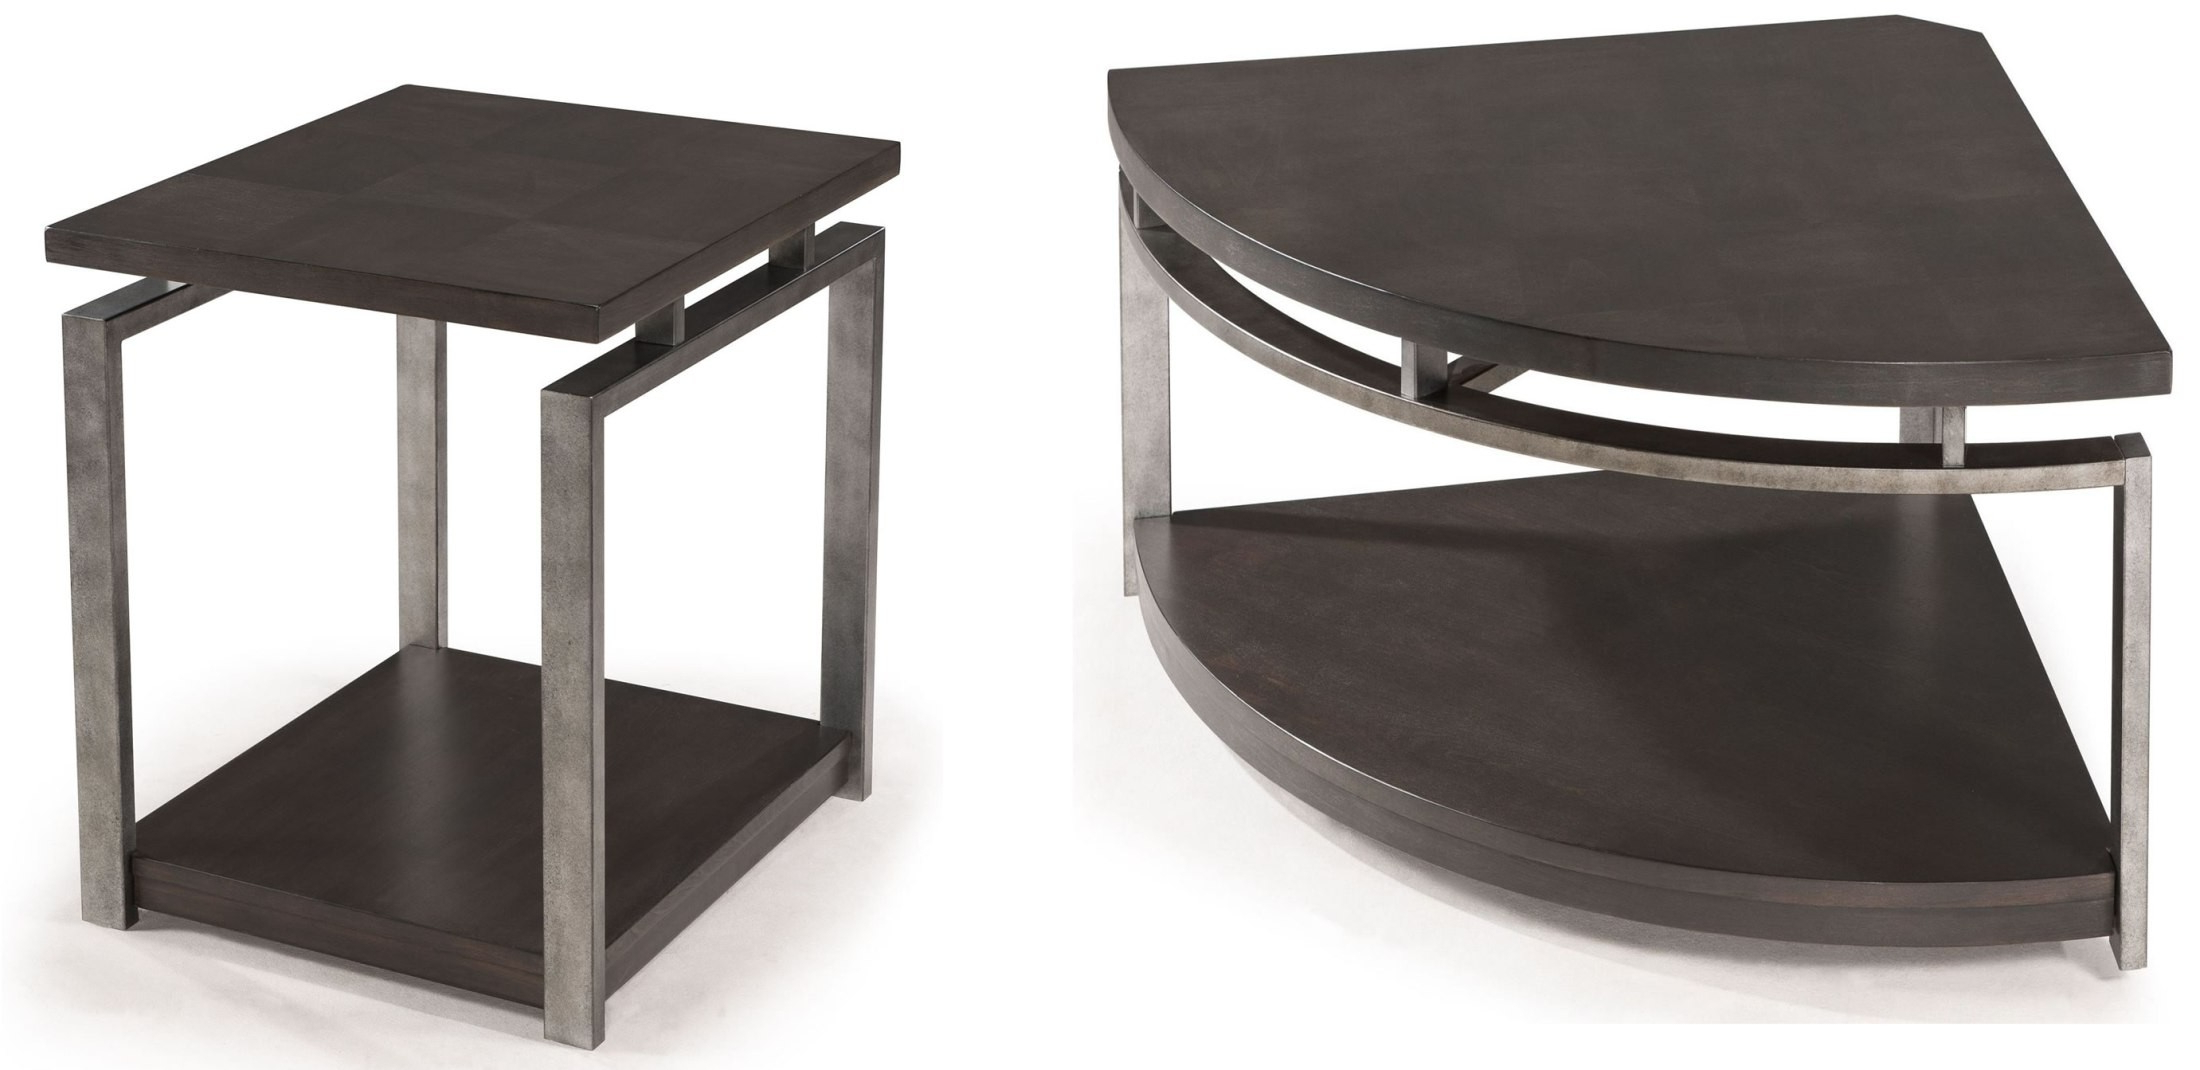 Most Recent Alton Cocktail Tables Intended For Alton Occasional Table Set From Magnussen Home (T2535 65) (View 12 of 20)